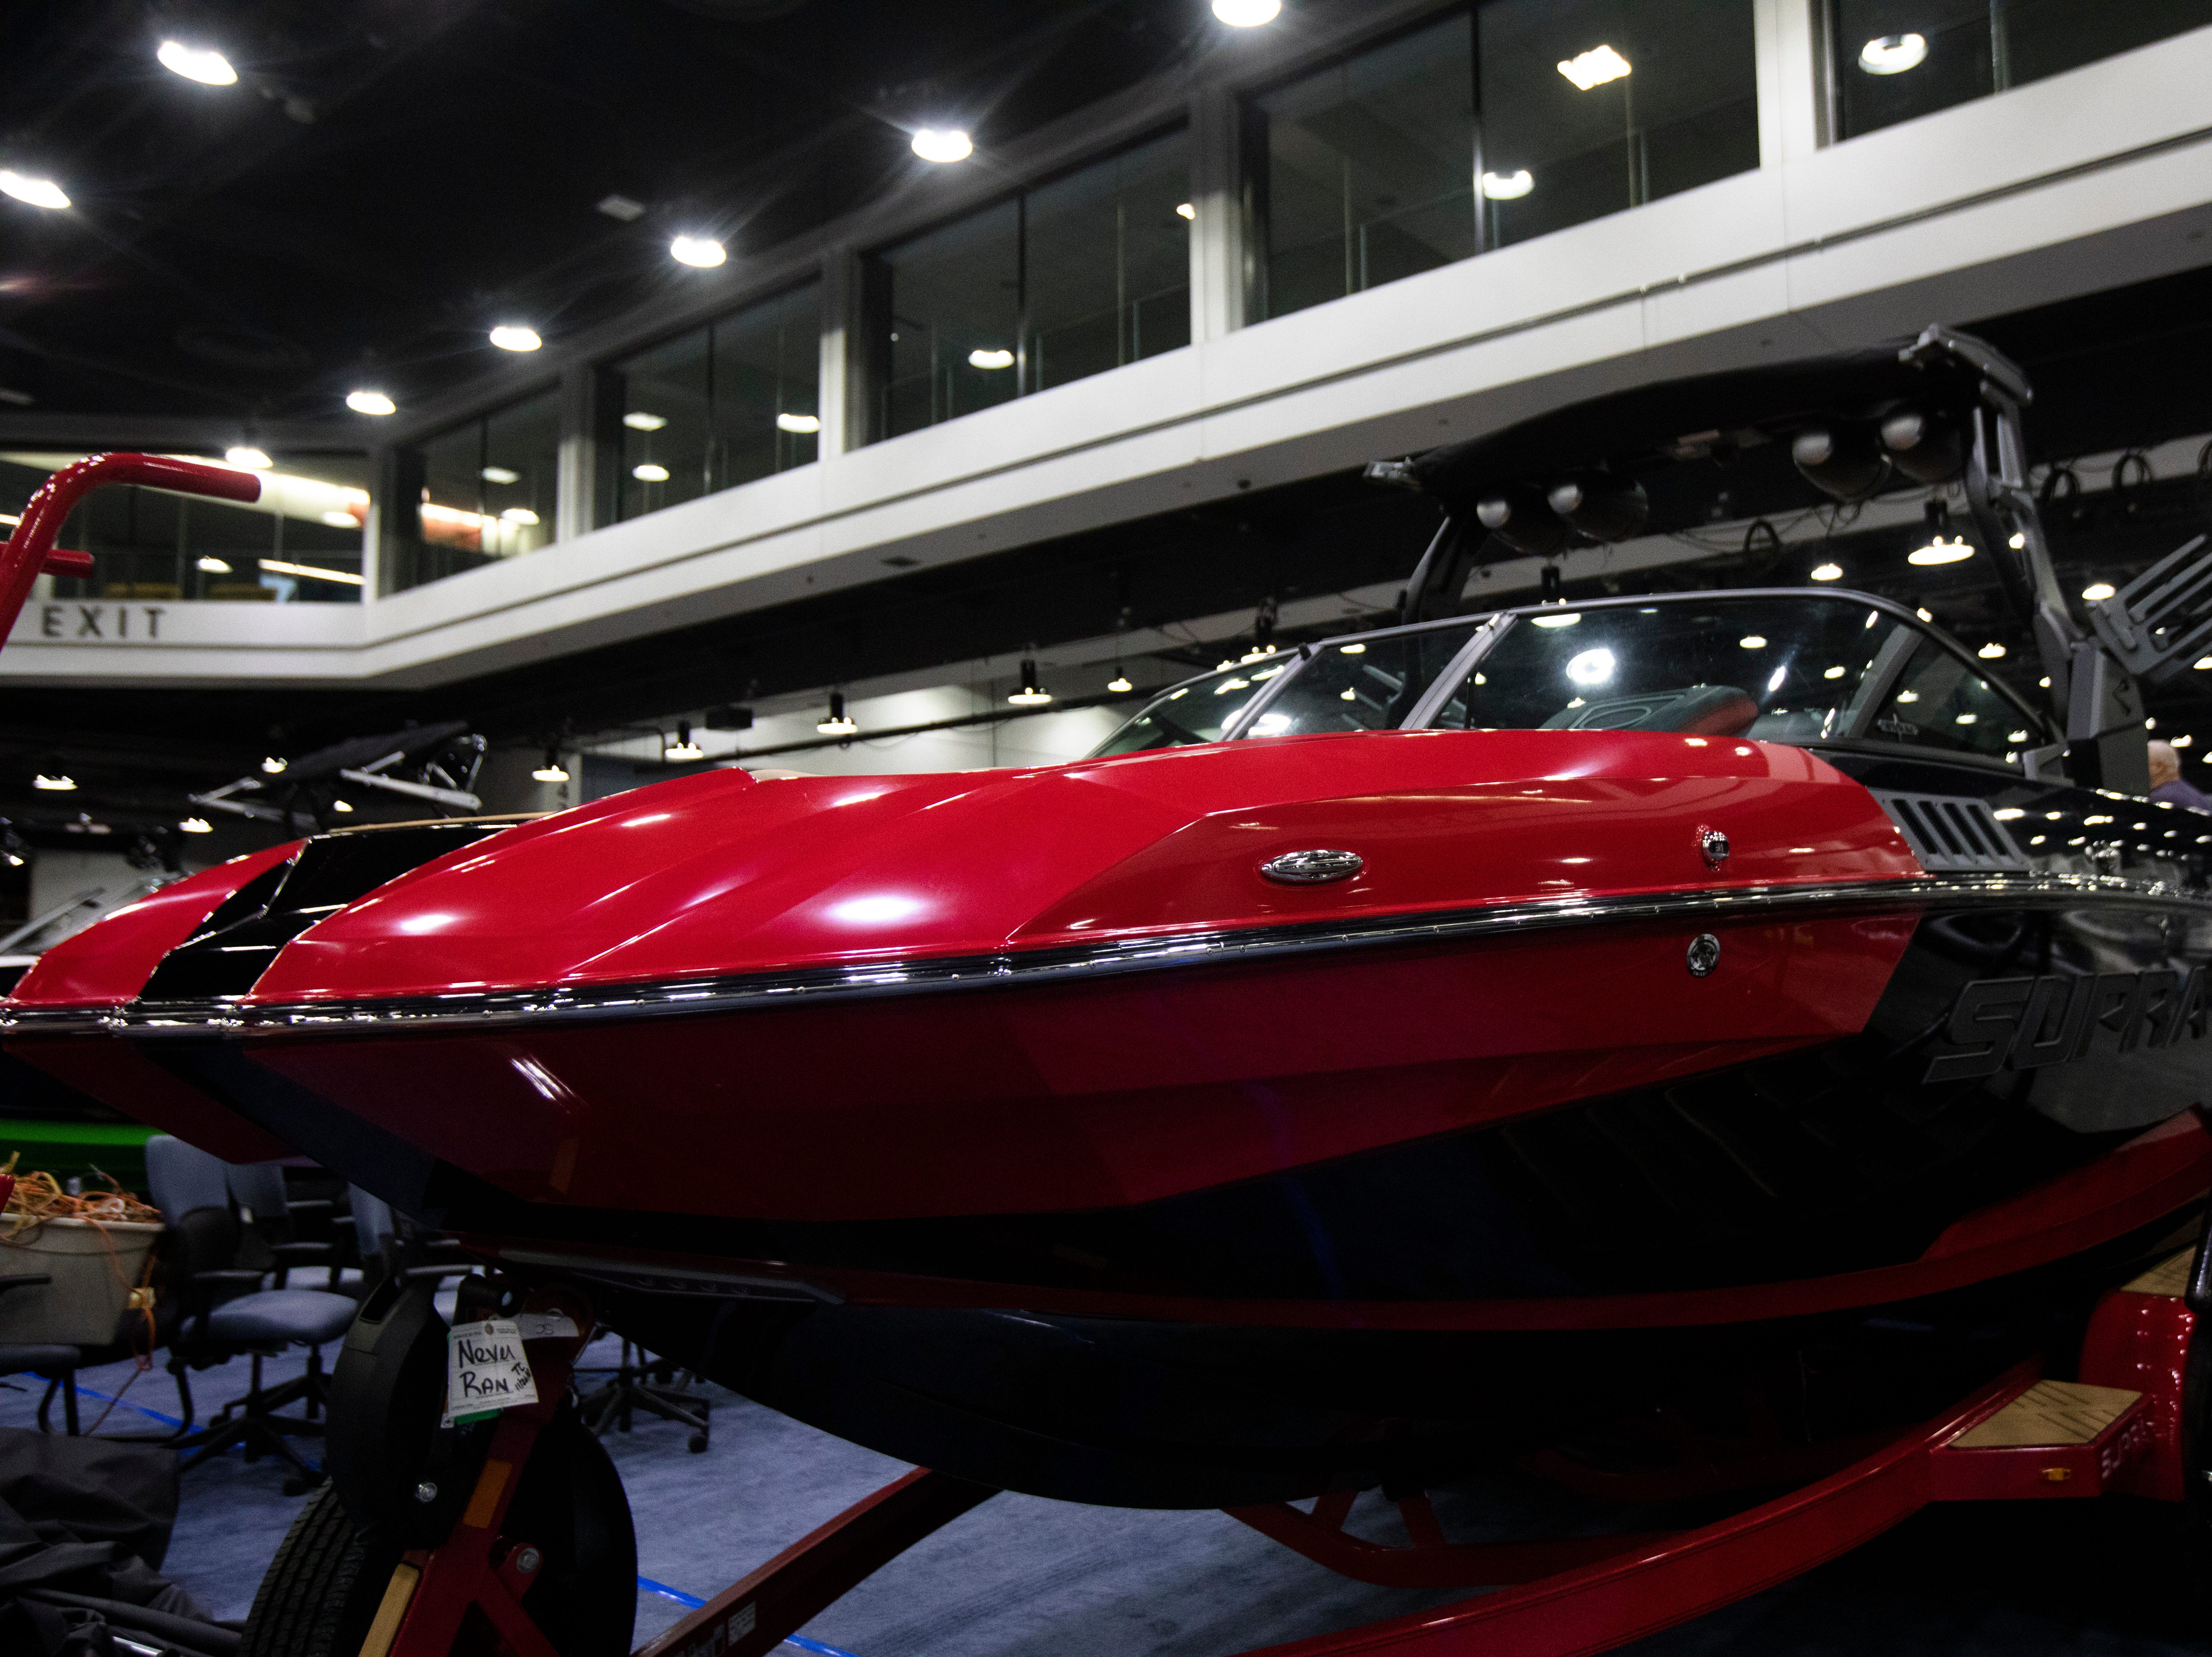 The Supra SE550, being sold for around $150,000, is set up at the Sea Ray of Cincinnati Marina The Centurion Ri257 is set up at the annual Cincinnati Travel Sports and Boat Show on Wednesday, Jan. 16, 2018 at the Duke Energy Convention Center in Downtown Cincinnati. According to the manufacturer the MSRB on the Centurion Ri257 is around $205,000.